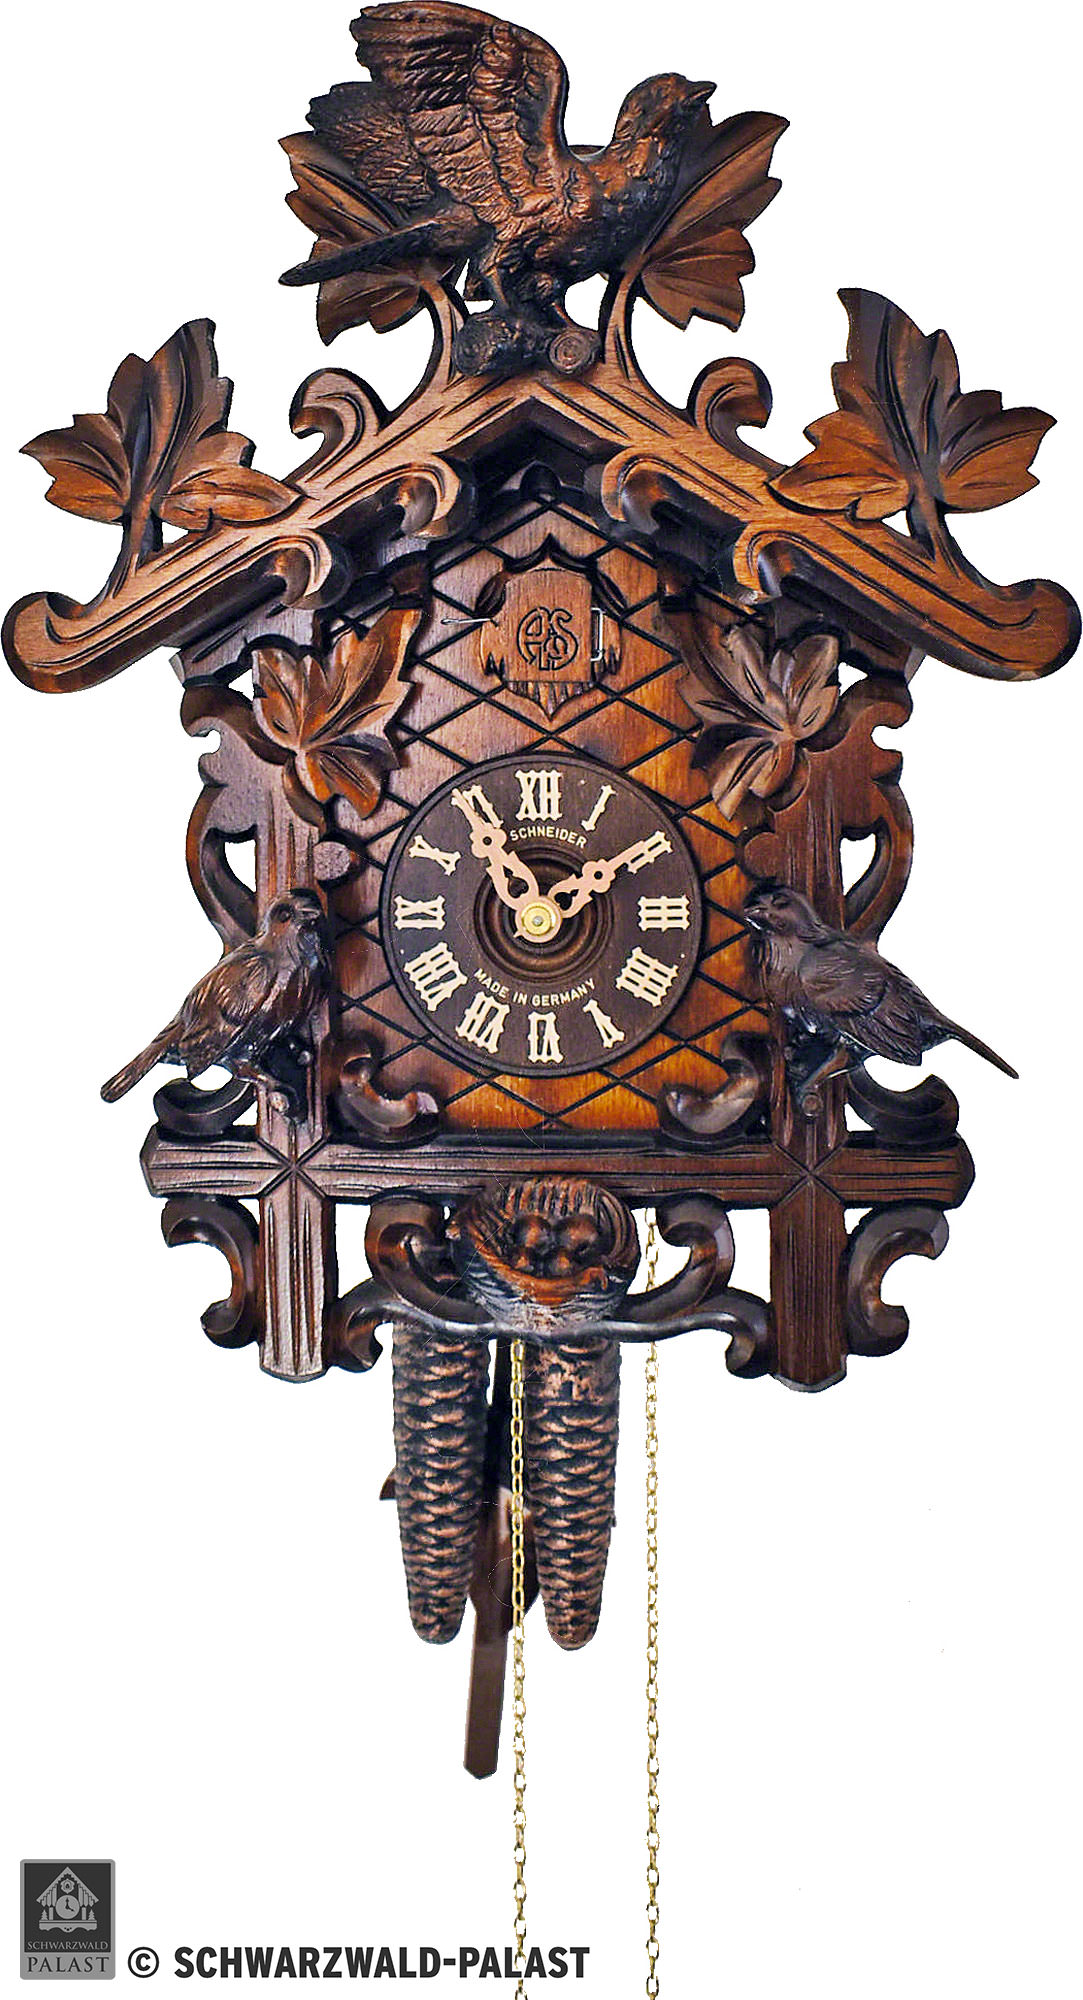 Anton schneider cuckoo clock manual